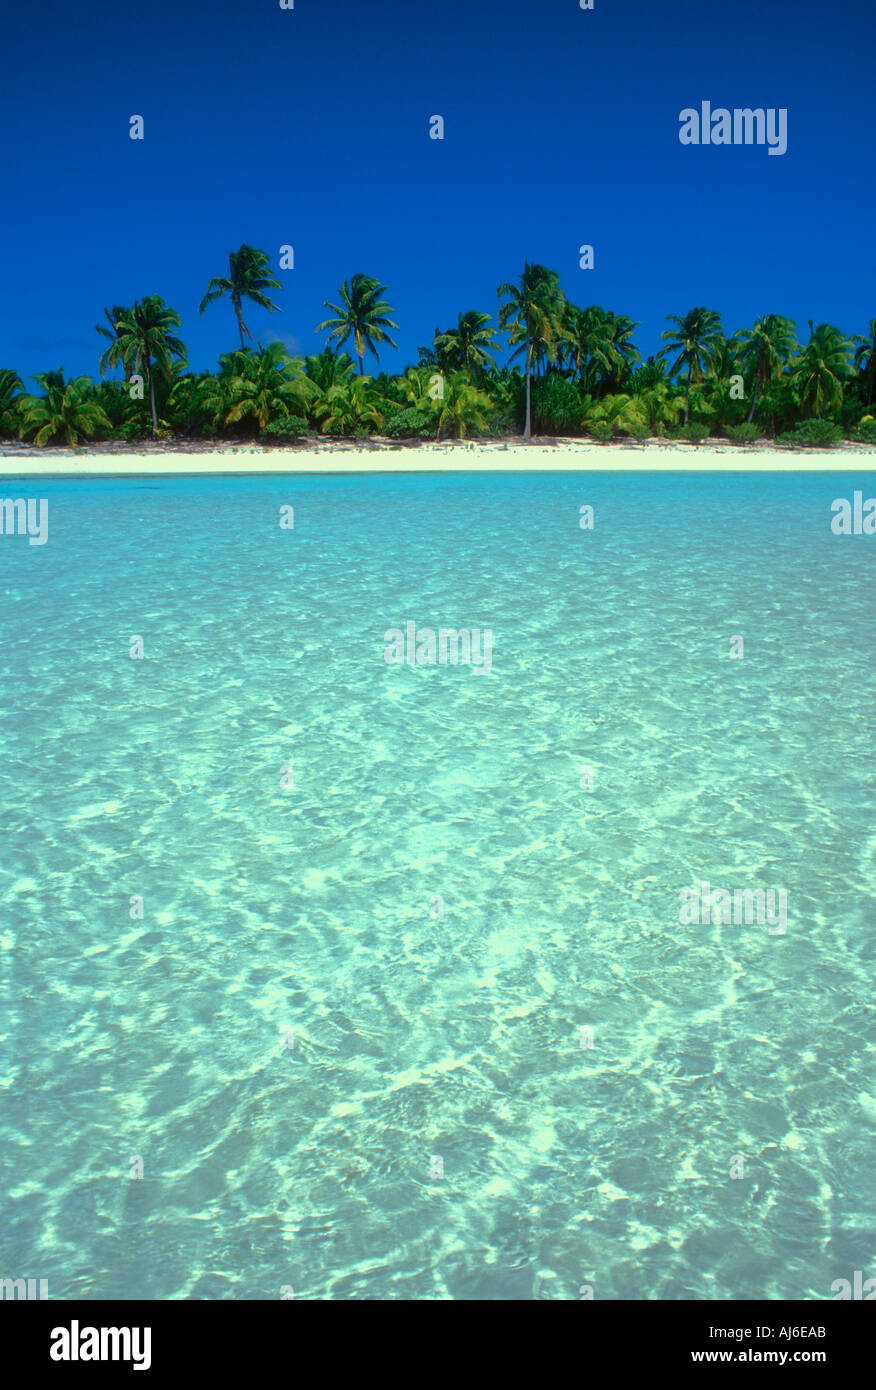 Palm trees along tropical beach in the Cook Islands Polynesia South Pacific Ocean - Stock Image